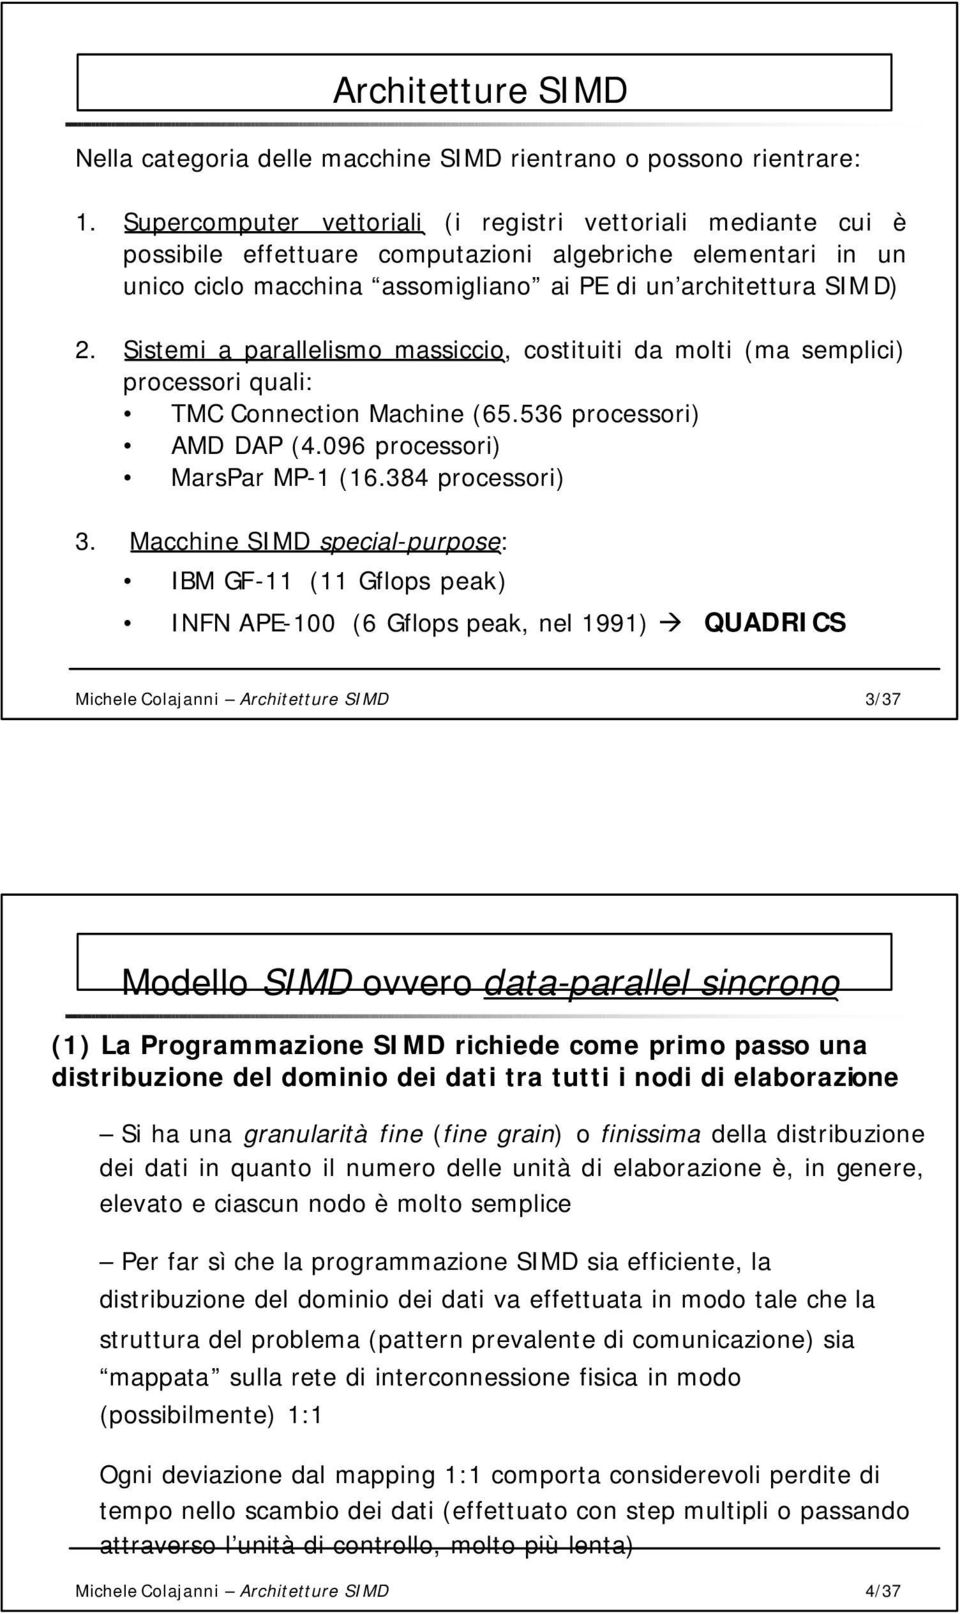 Sistemi a parallelismo massiccio, costituiti da molti (ma semplici) processori quali: TM onnection Machine (6.6 processori) MD DP (.96 processori) MarsPar MP-1 (16.8 processori).